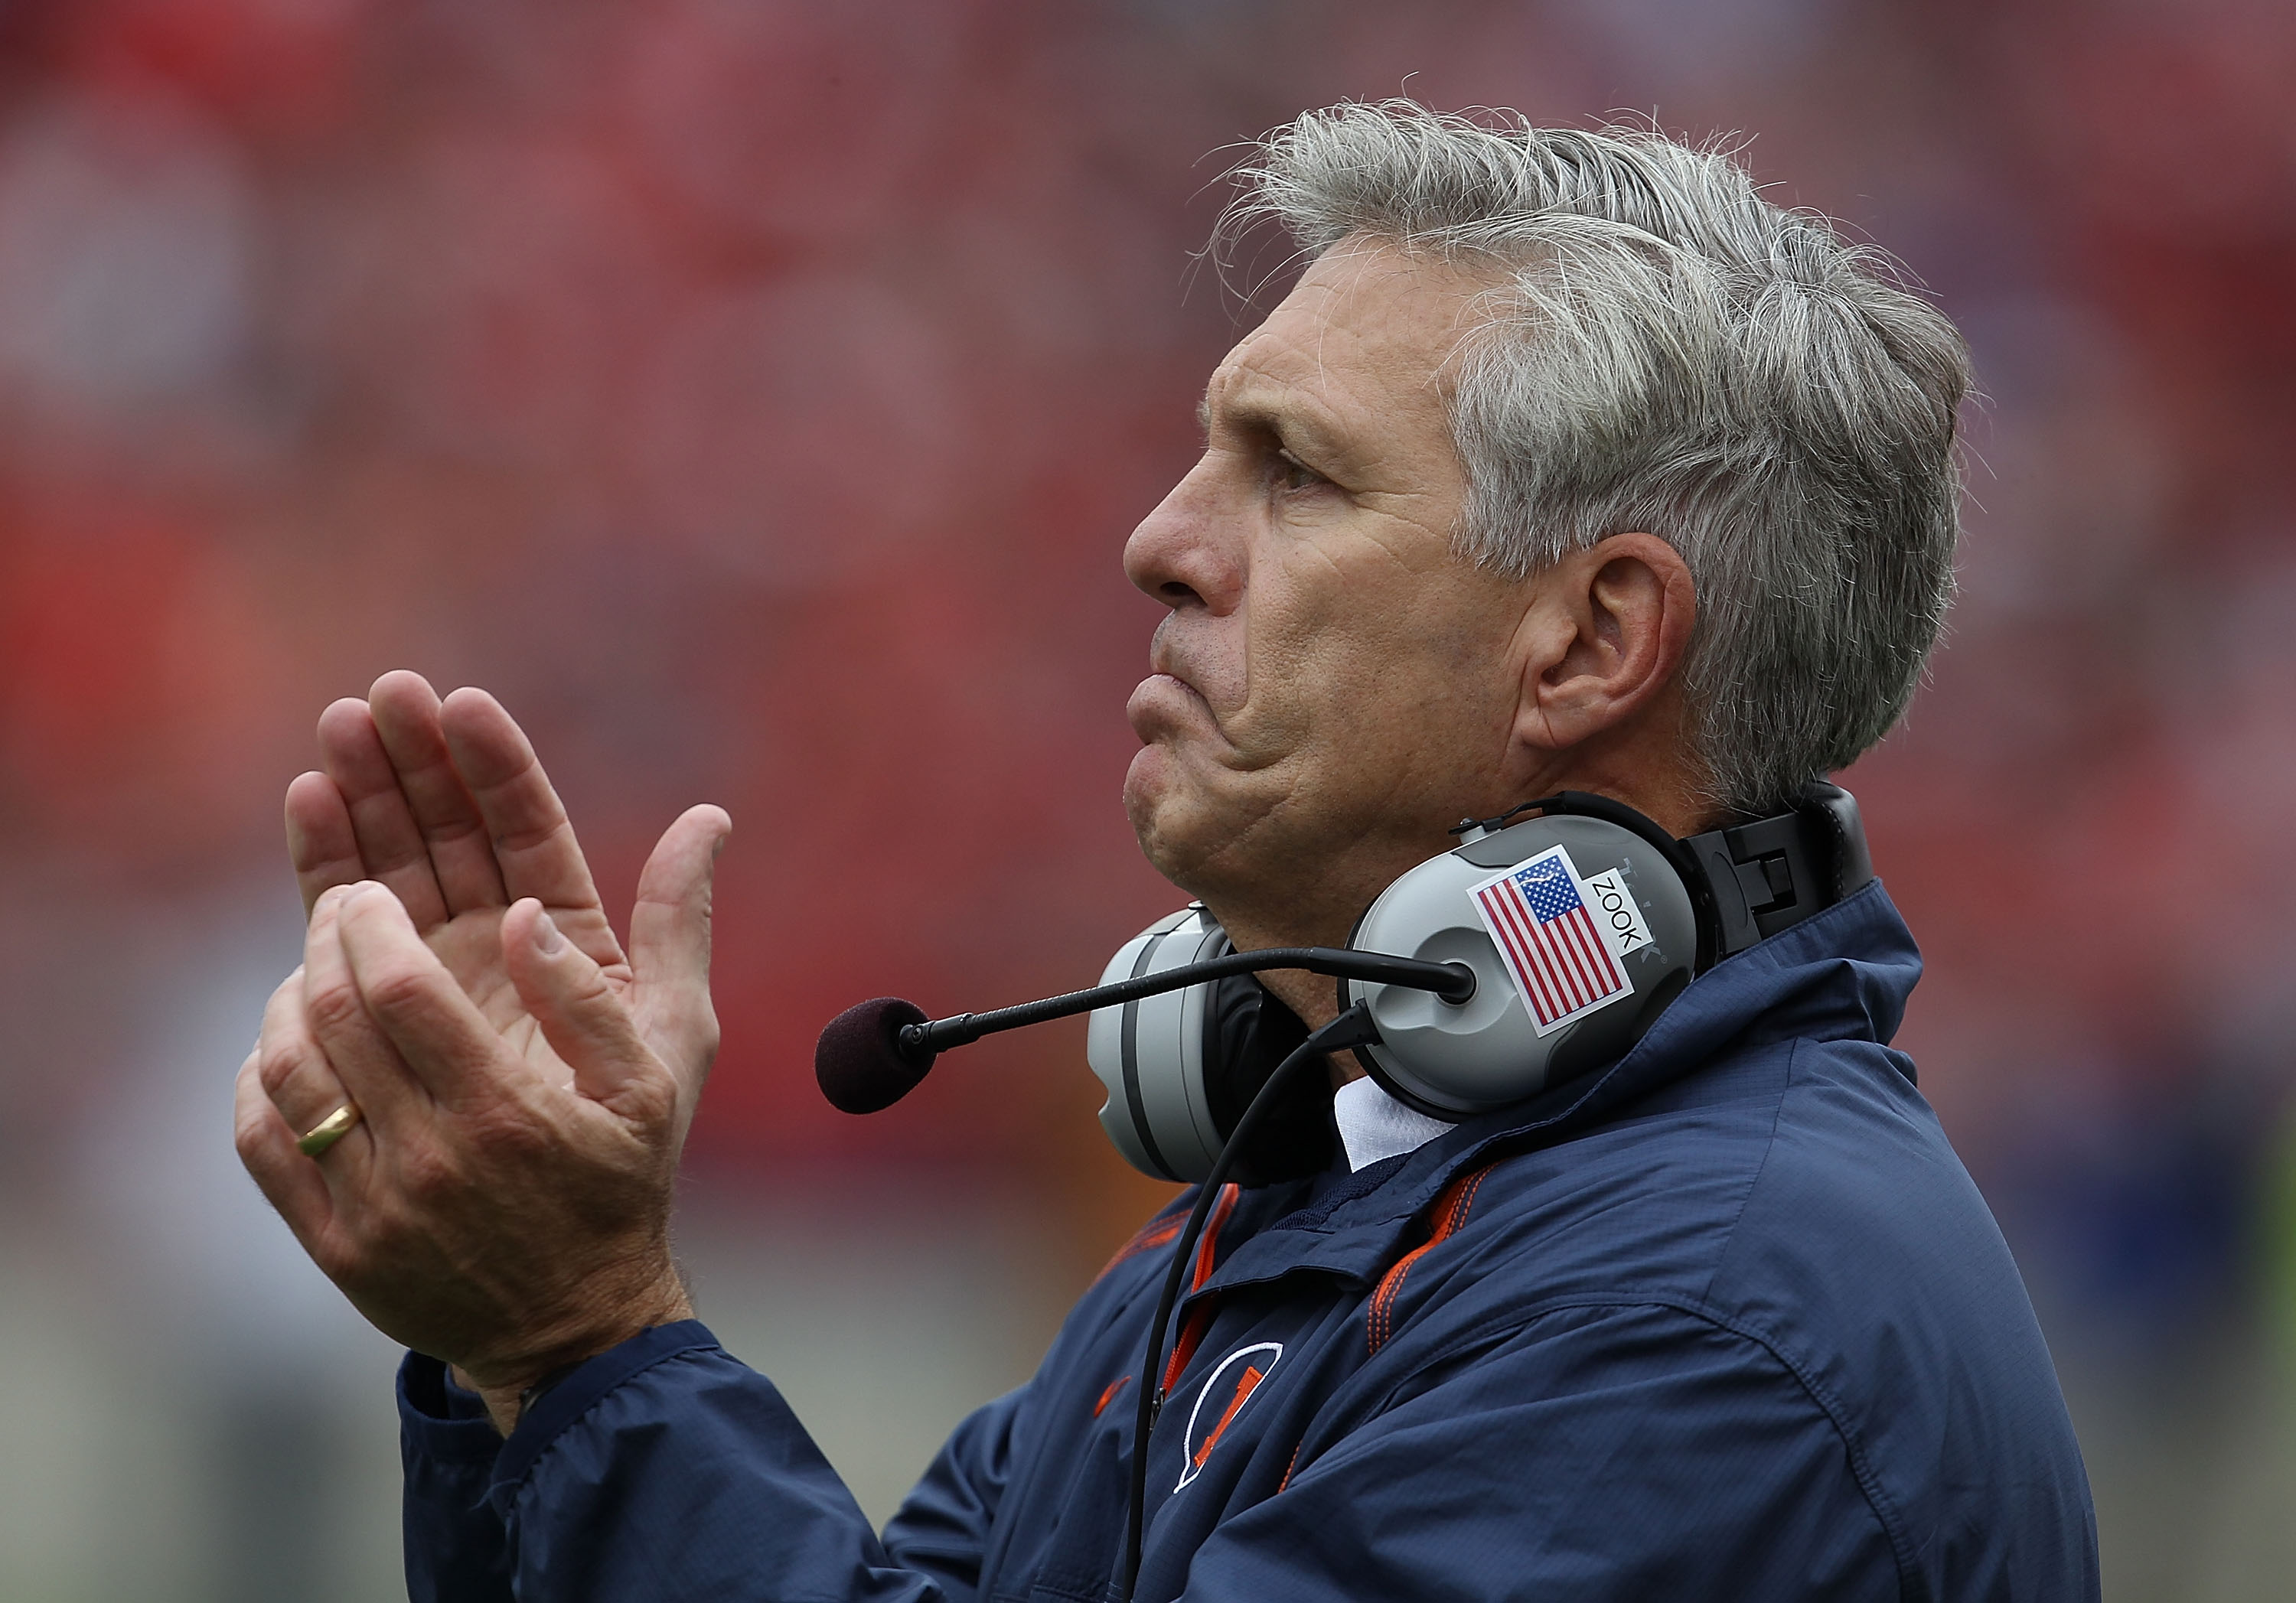 Ron Zook praised the work of Corey Liuget for Illinois